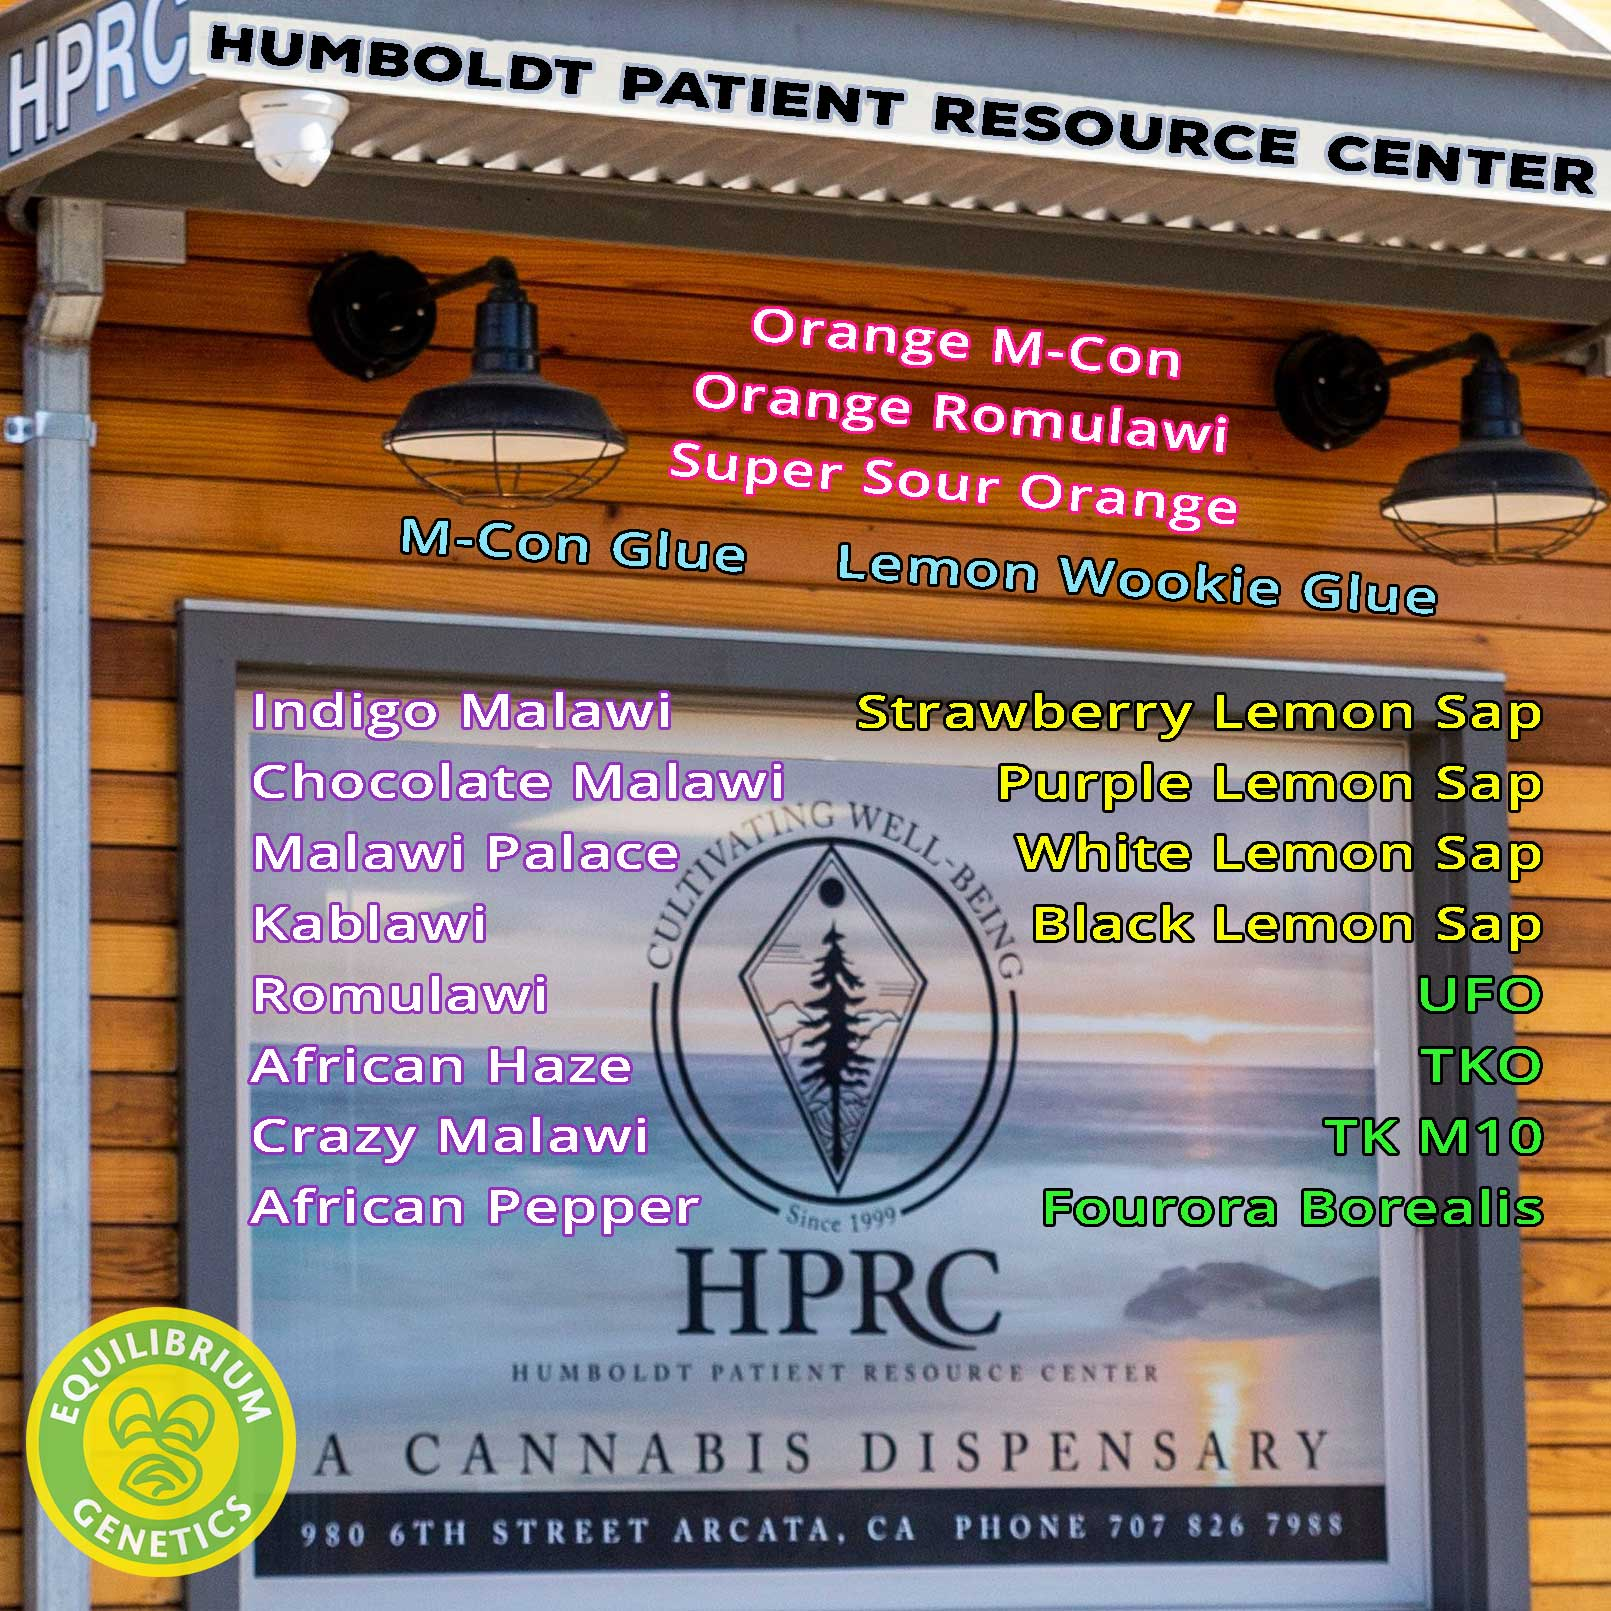 Humboldt Patient Resource Center